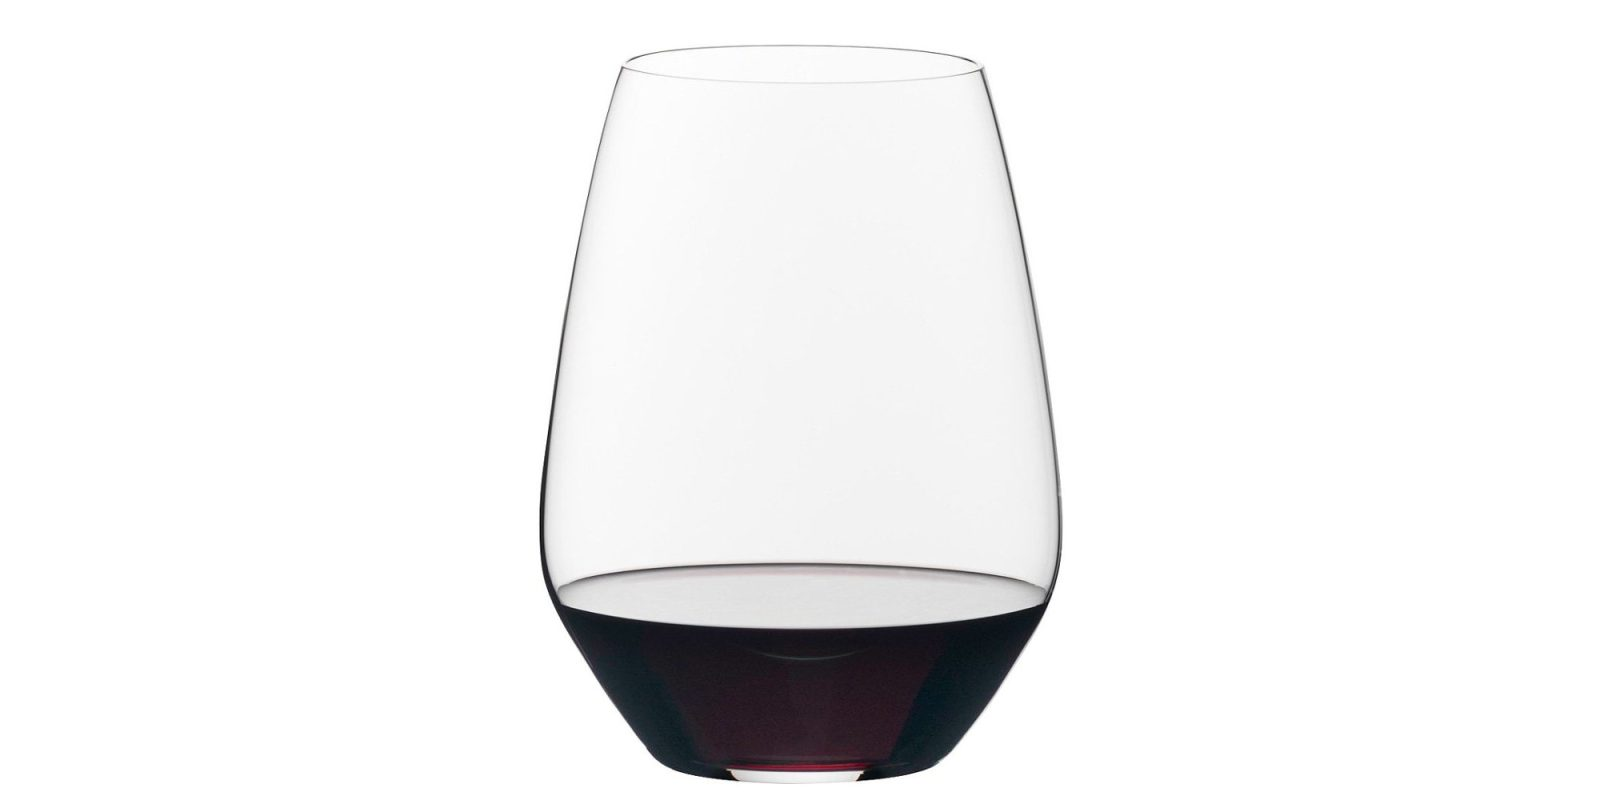 Riedel drinkware sets 75% off for today only: 4-pack wine glasses $10, more